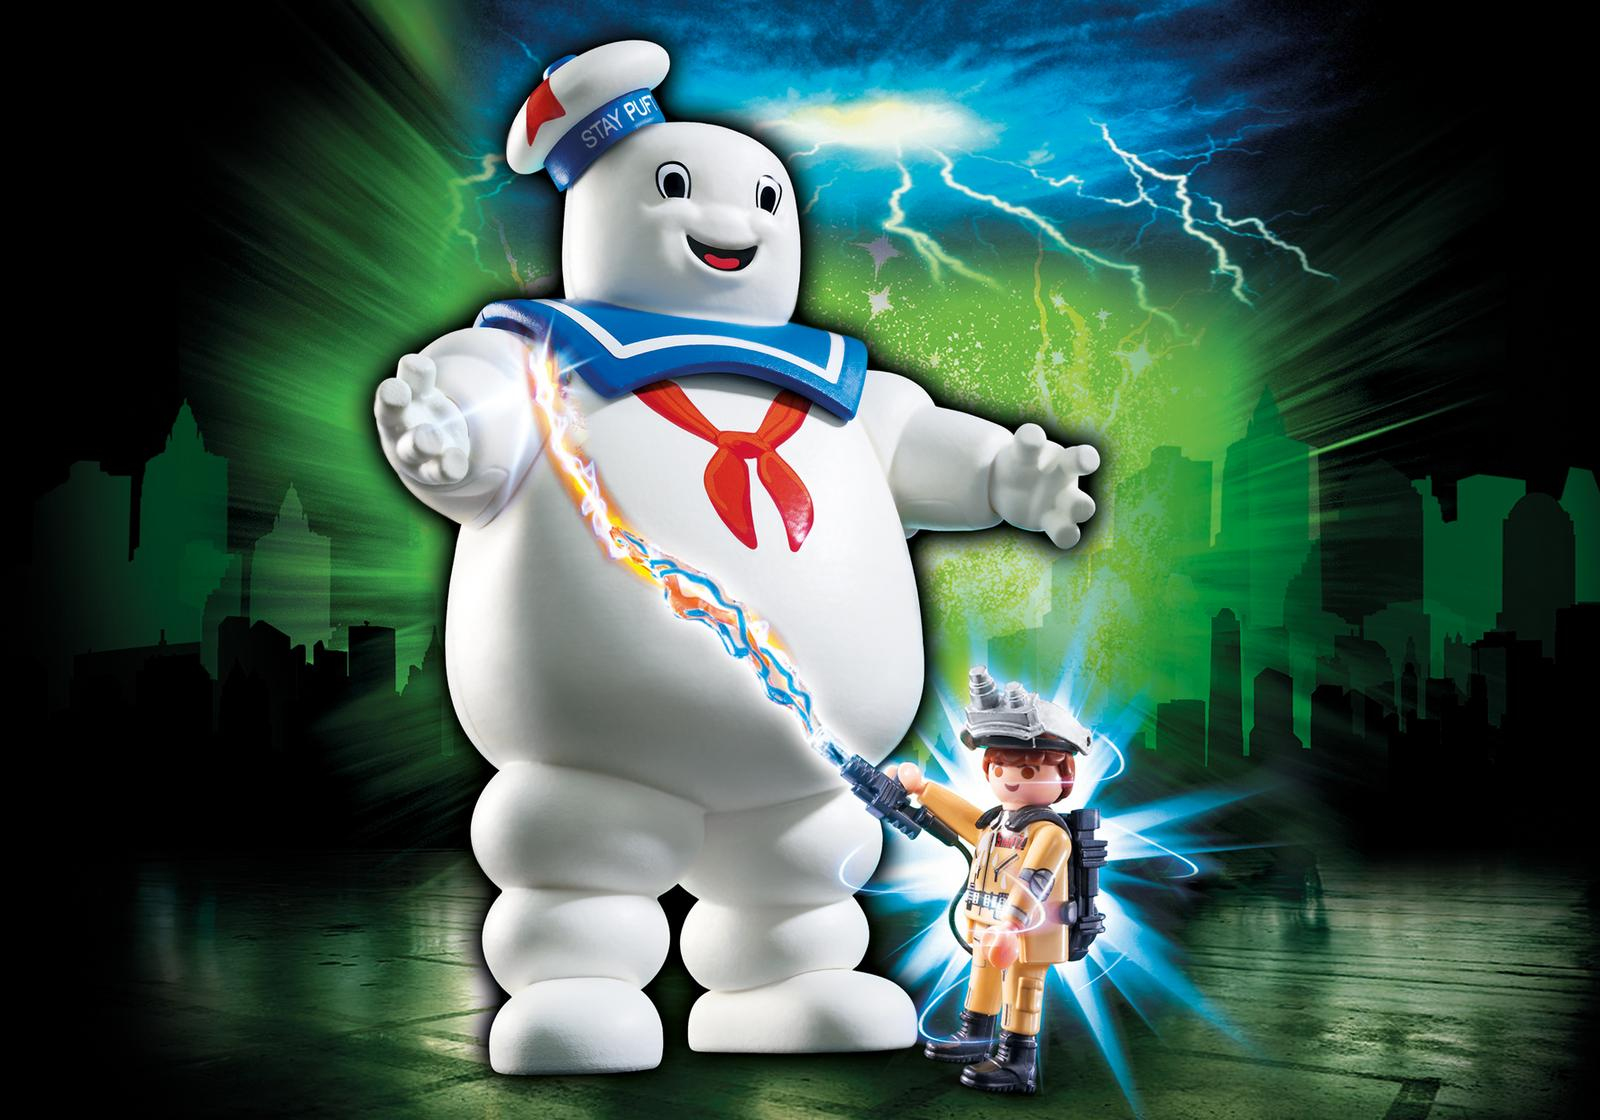 PLAYMOBIL GHOSTBUSTERS #9221 Stay Puft Marshmallow Man - New Factory Sealed